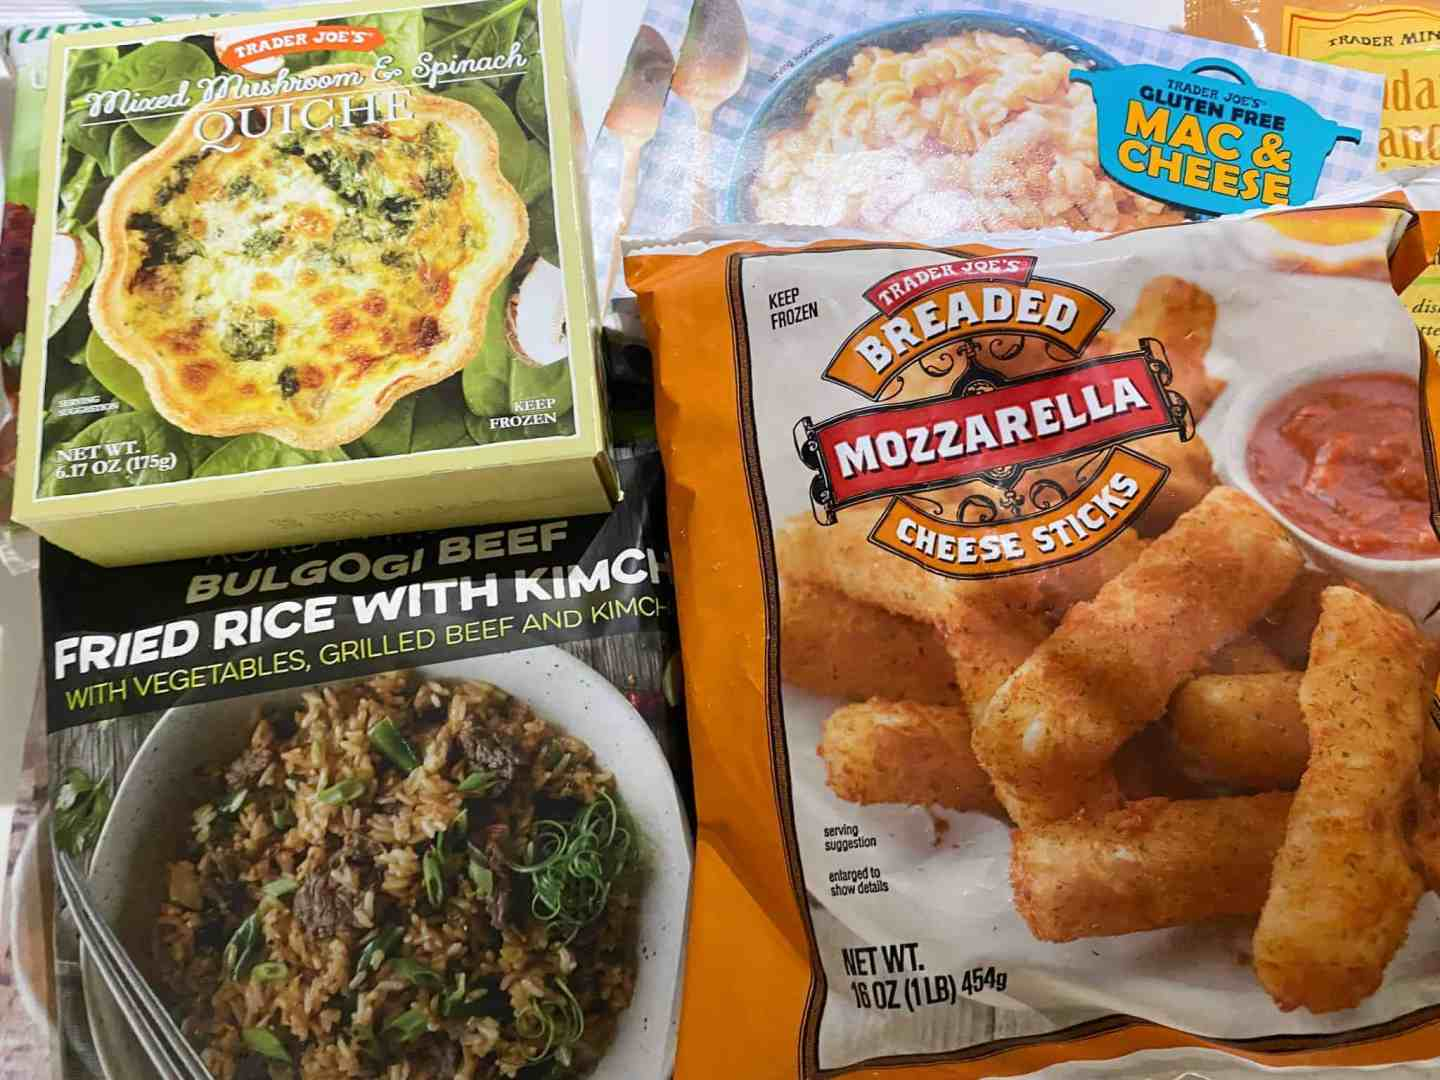 trader-joes-quiche-mozzarella-sticks